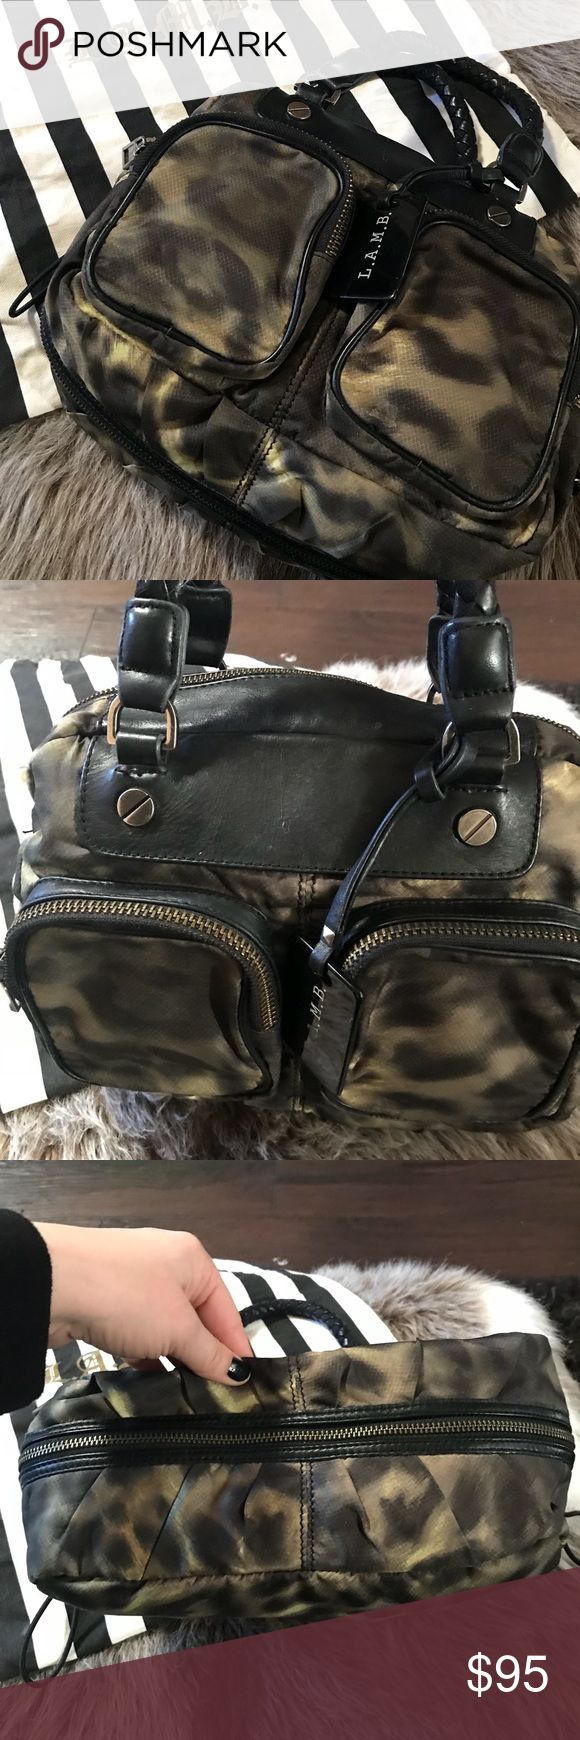 L.A.M.B leopard print bag Leopard print nylon like fabric with black leather accents. Very gently used bag. Please see pictures for imperfections. Comes with dust bag. L.A.M.B. Bags